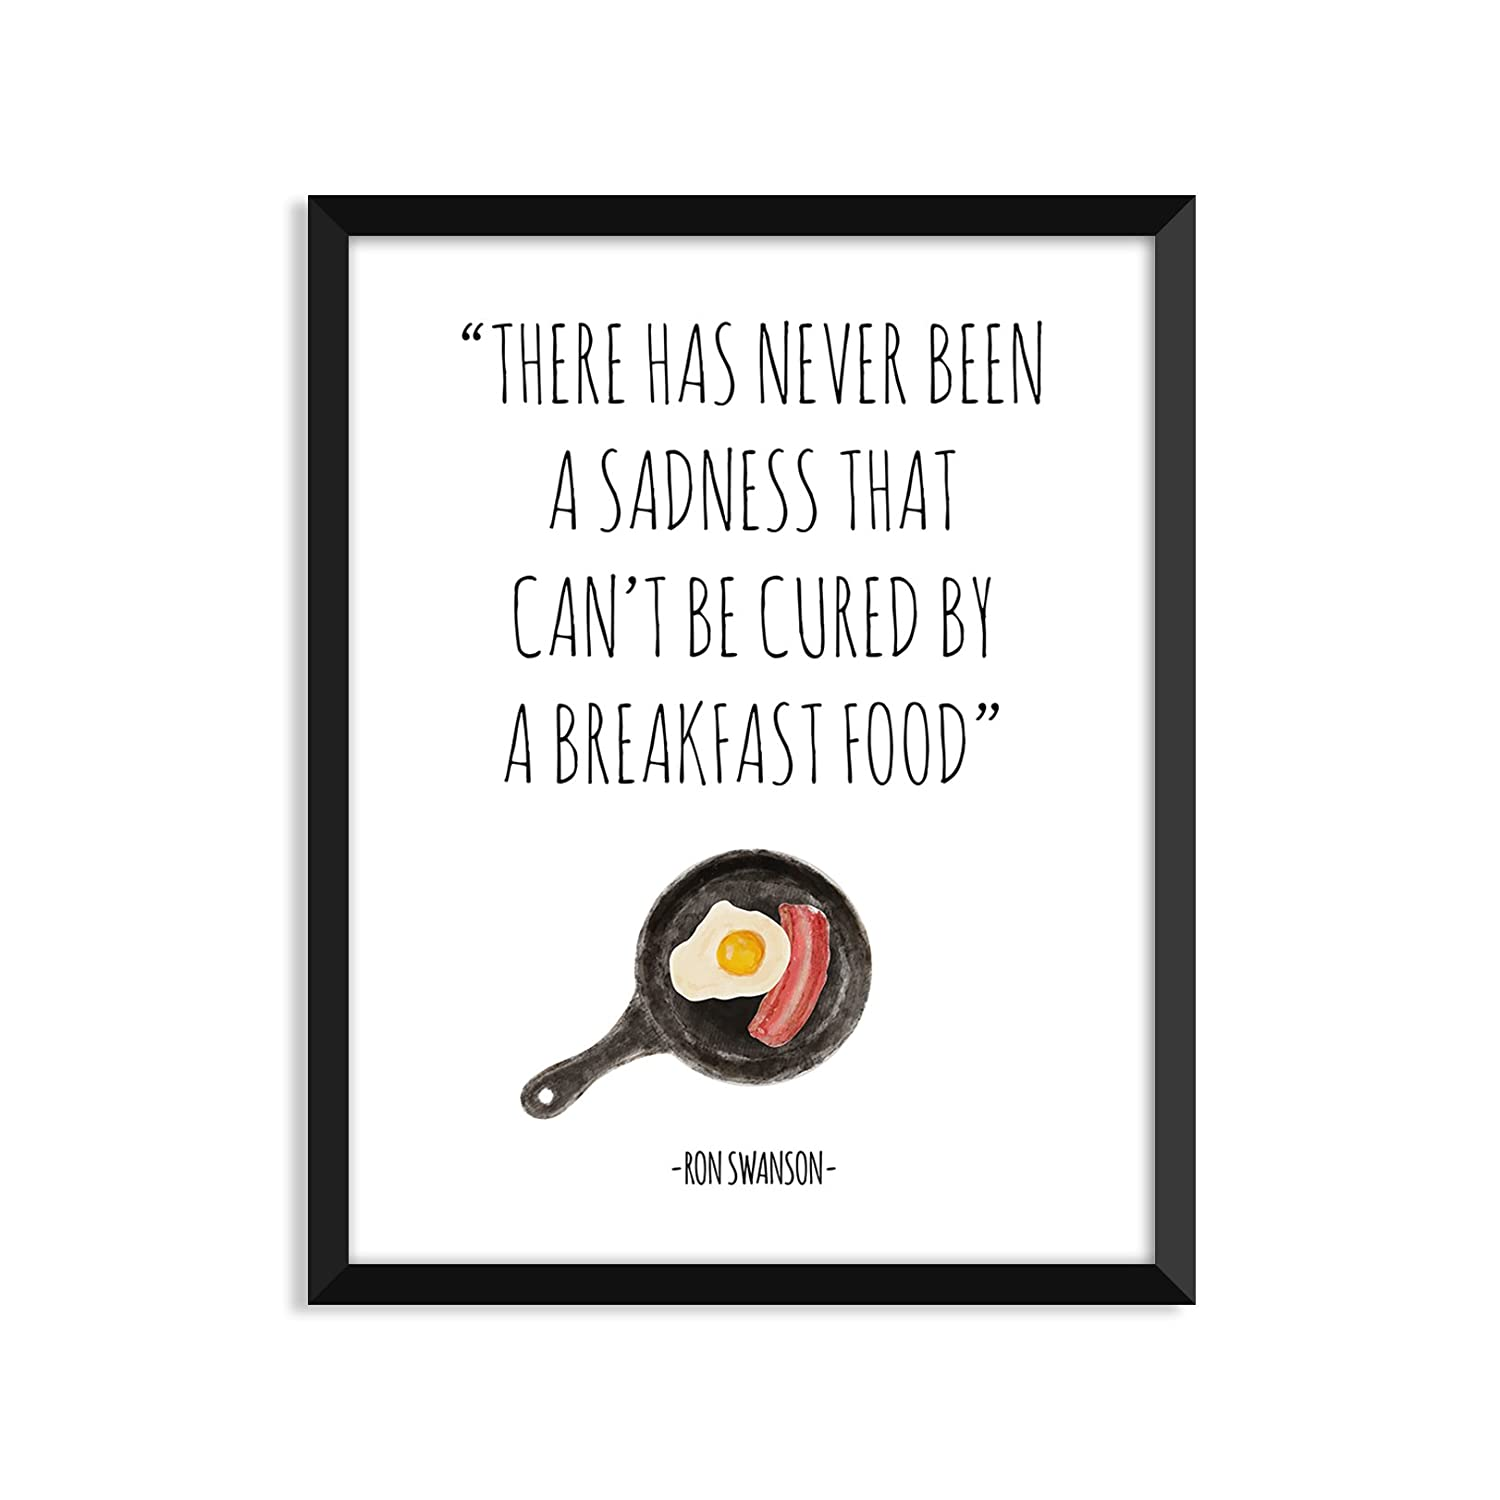 Parks and Recreation Home Decor Serif Design Studios Ron Swanson Funny Quote Minimalist Poster Leslie Knope Breakfast Food